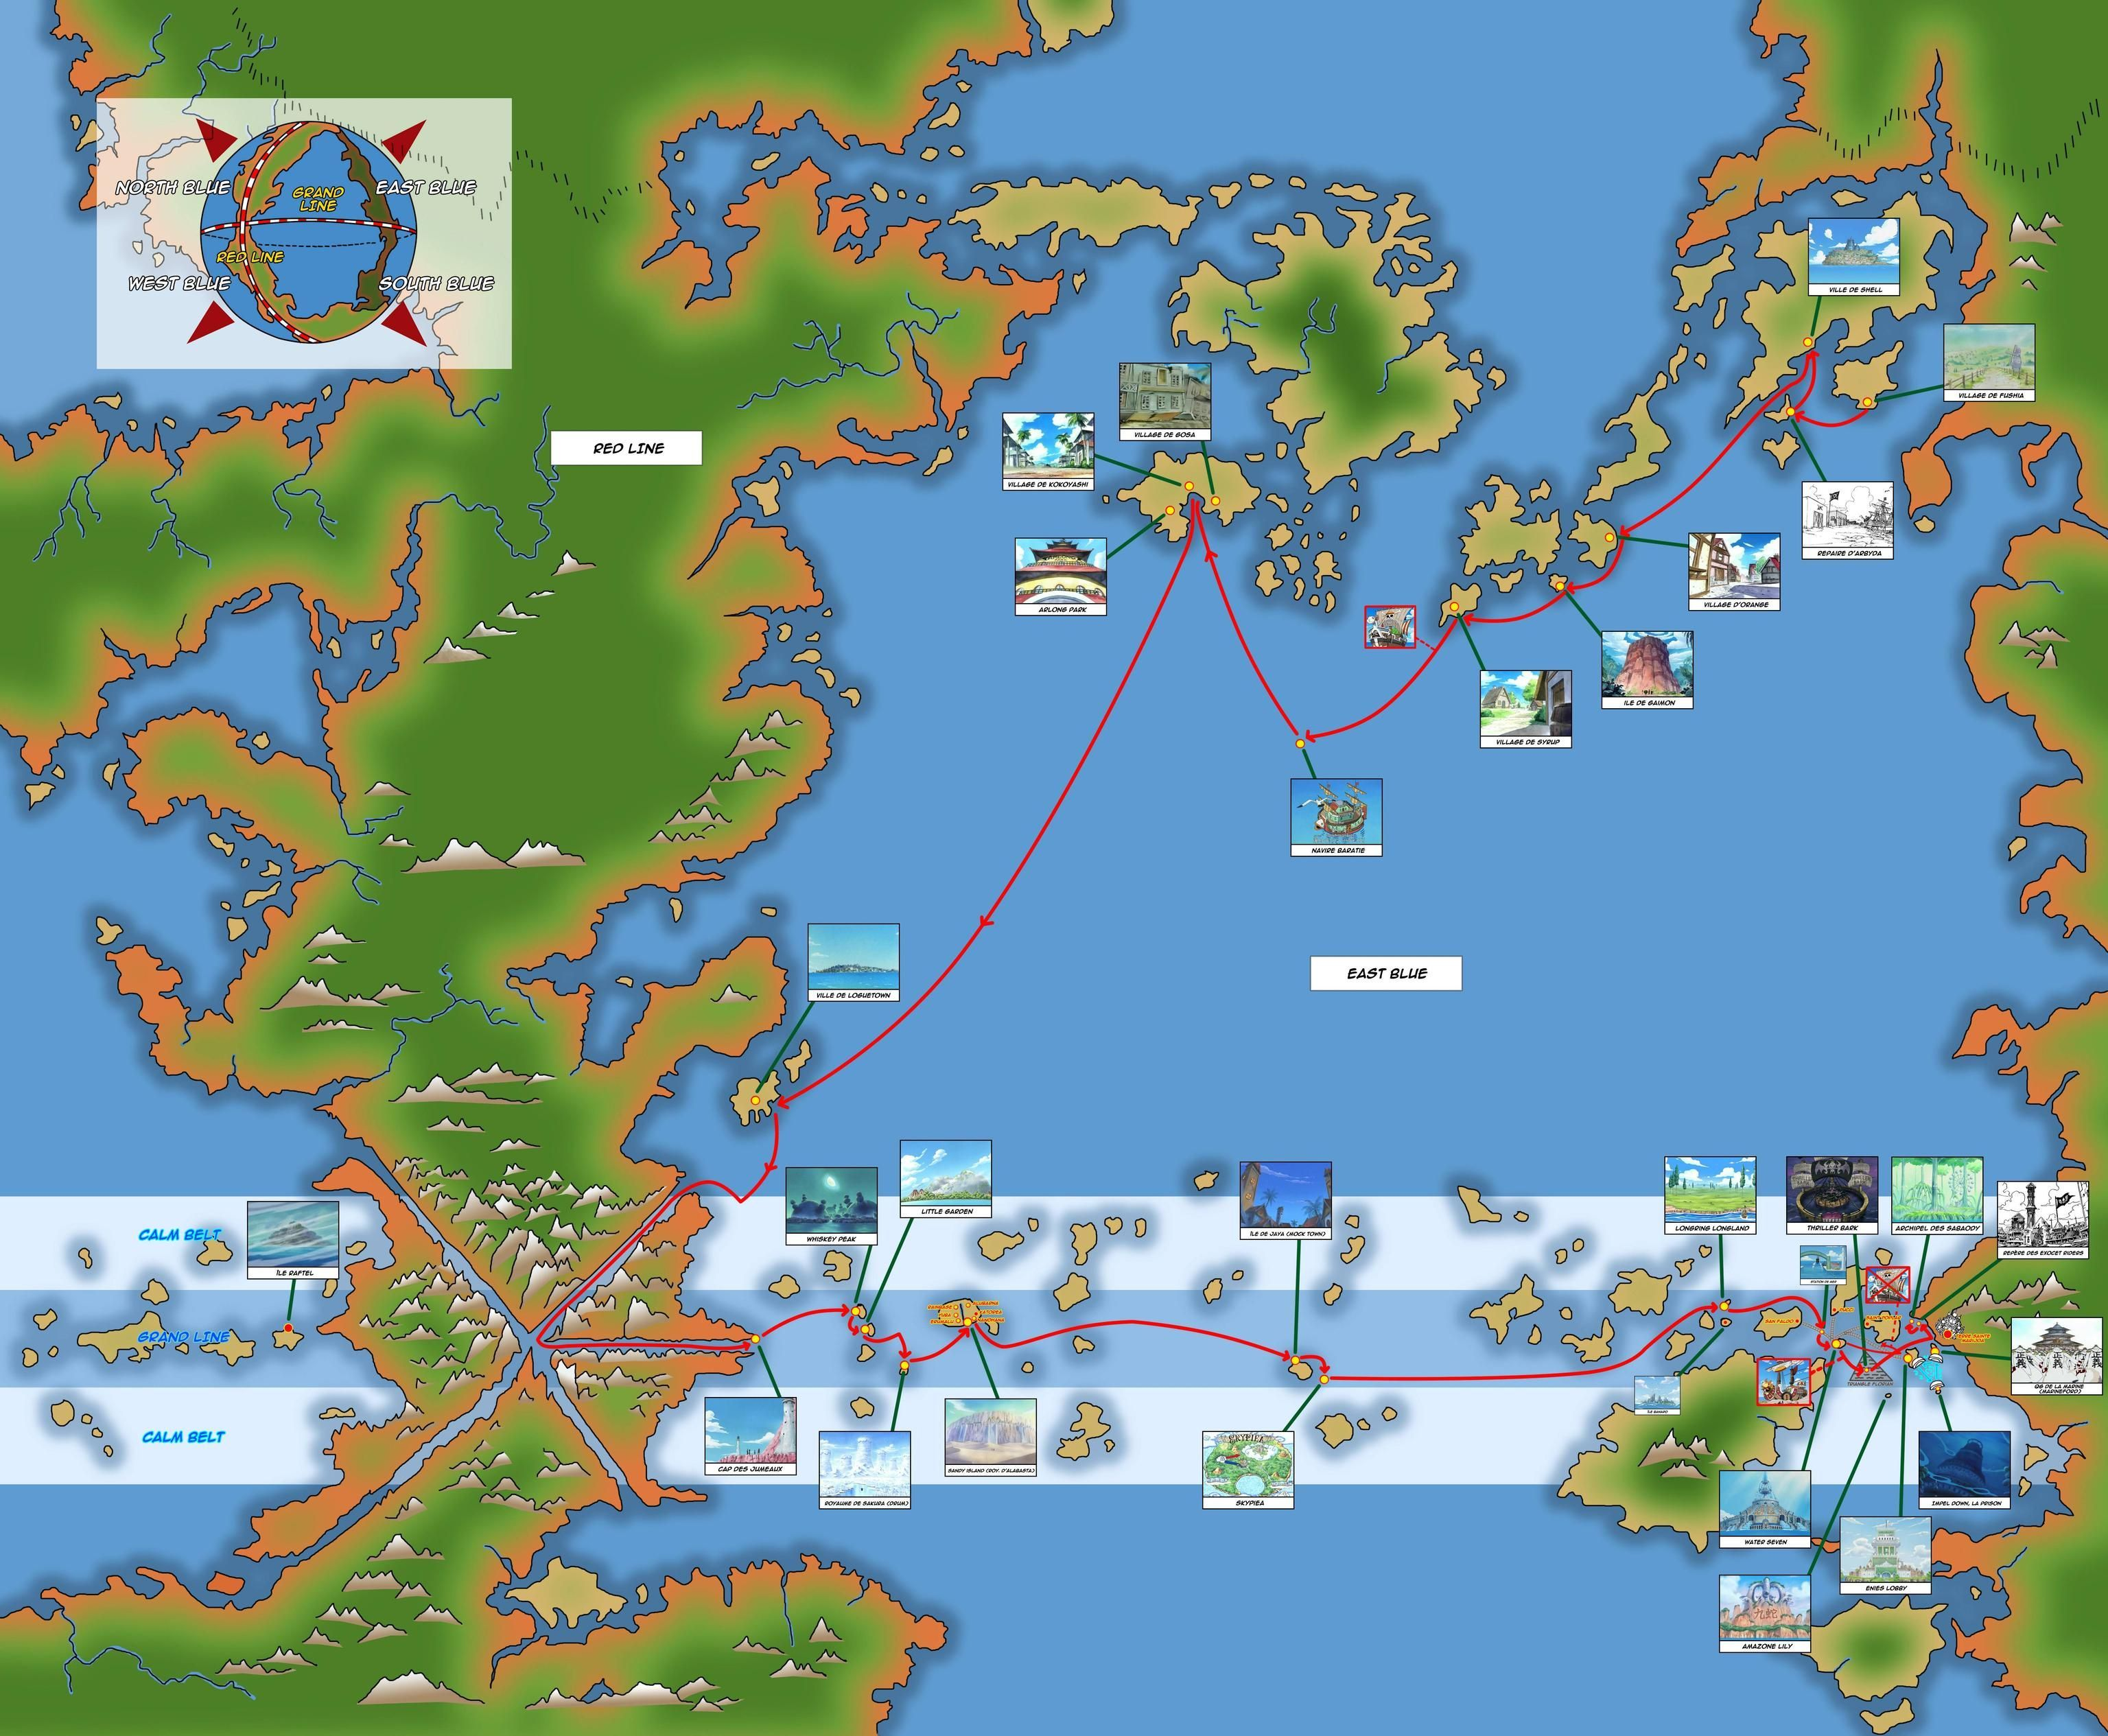 Map Of The World Of One Piece.Map Of The Op World At One Piece Drawing References For 3d